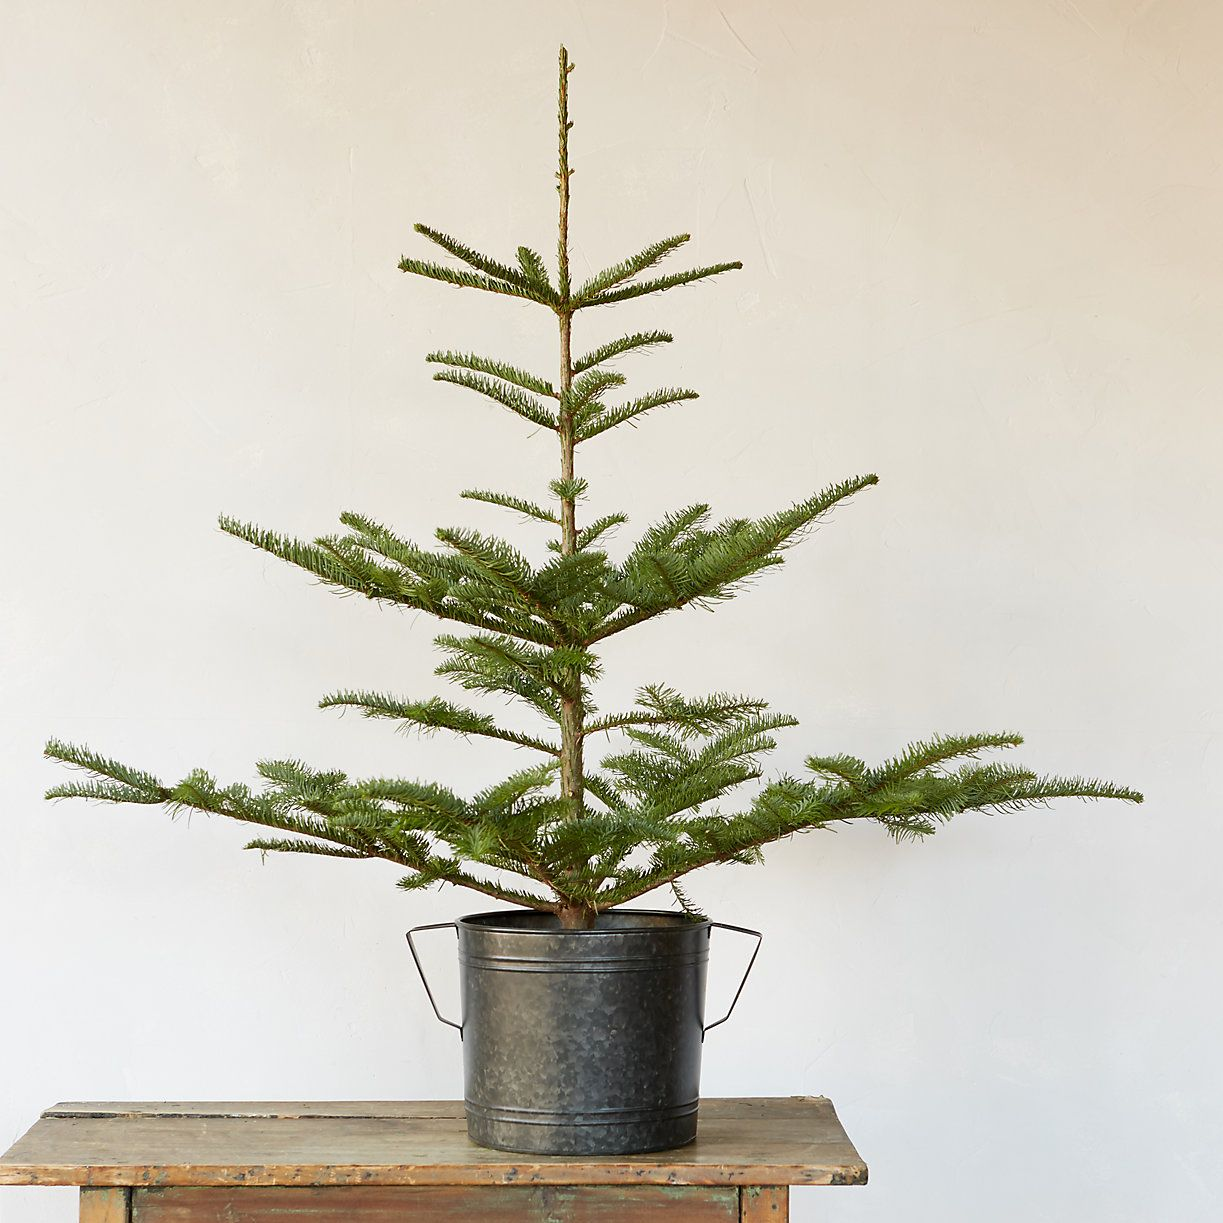 not everybody has room for a monster christmas tree weve rounded up 10 tiny live or fresh cut trees and topiaries just right for a tabletop or front - Live Tabletop Christmas Trees